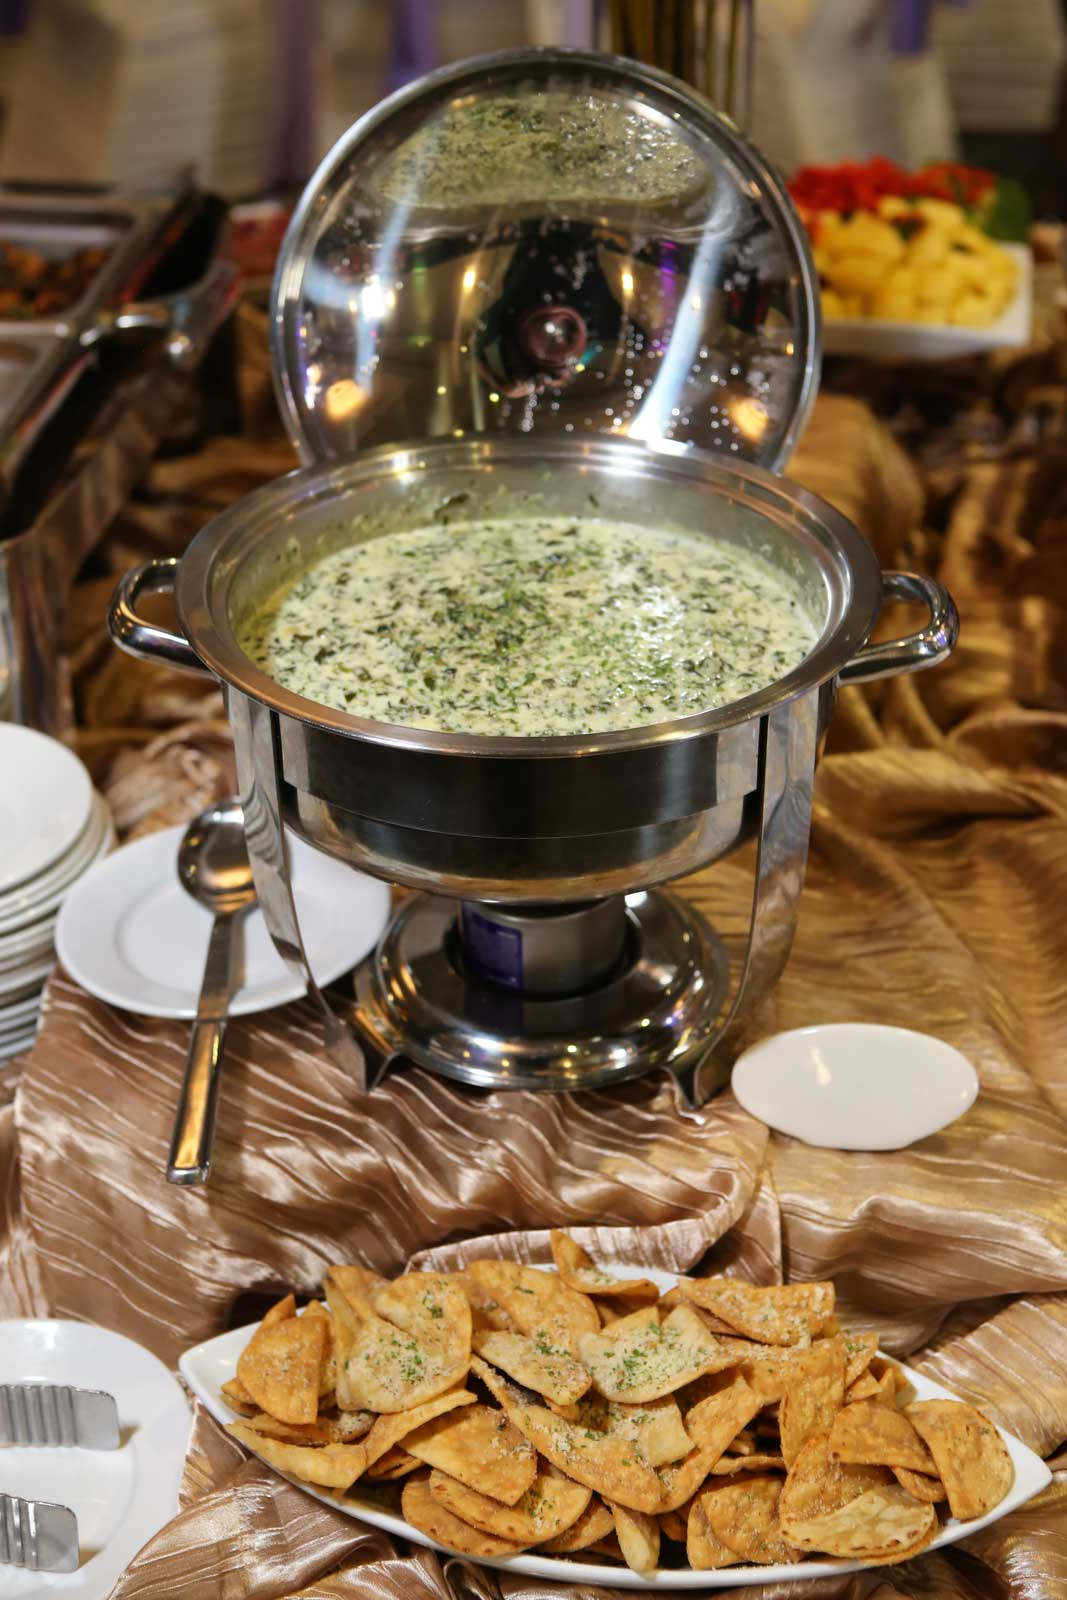 Hot Dips with crostini and crackers from Catering By Norris